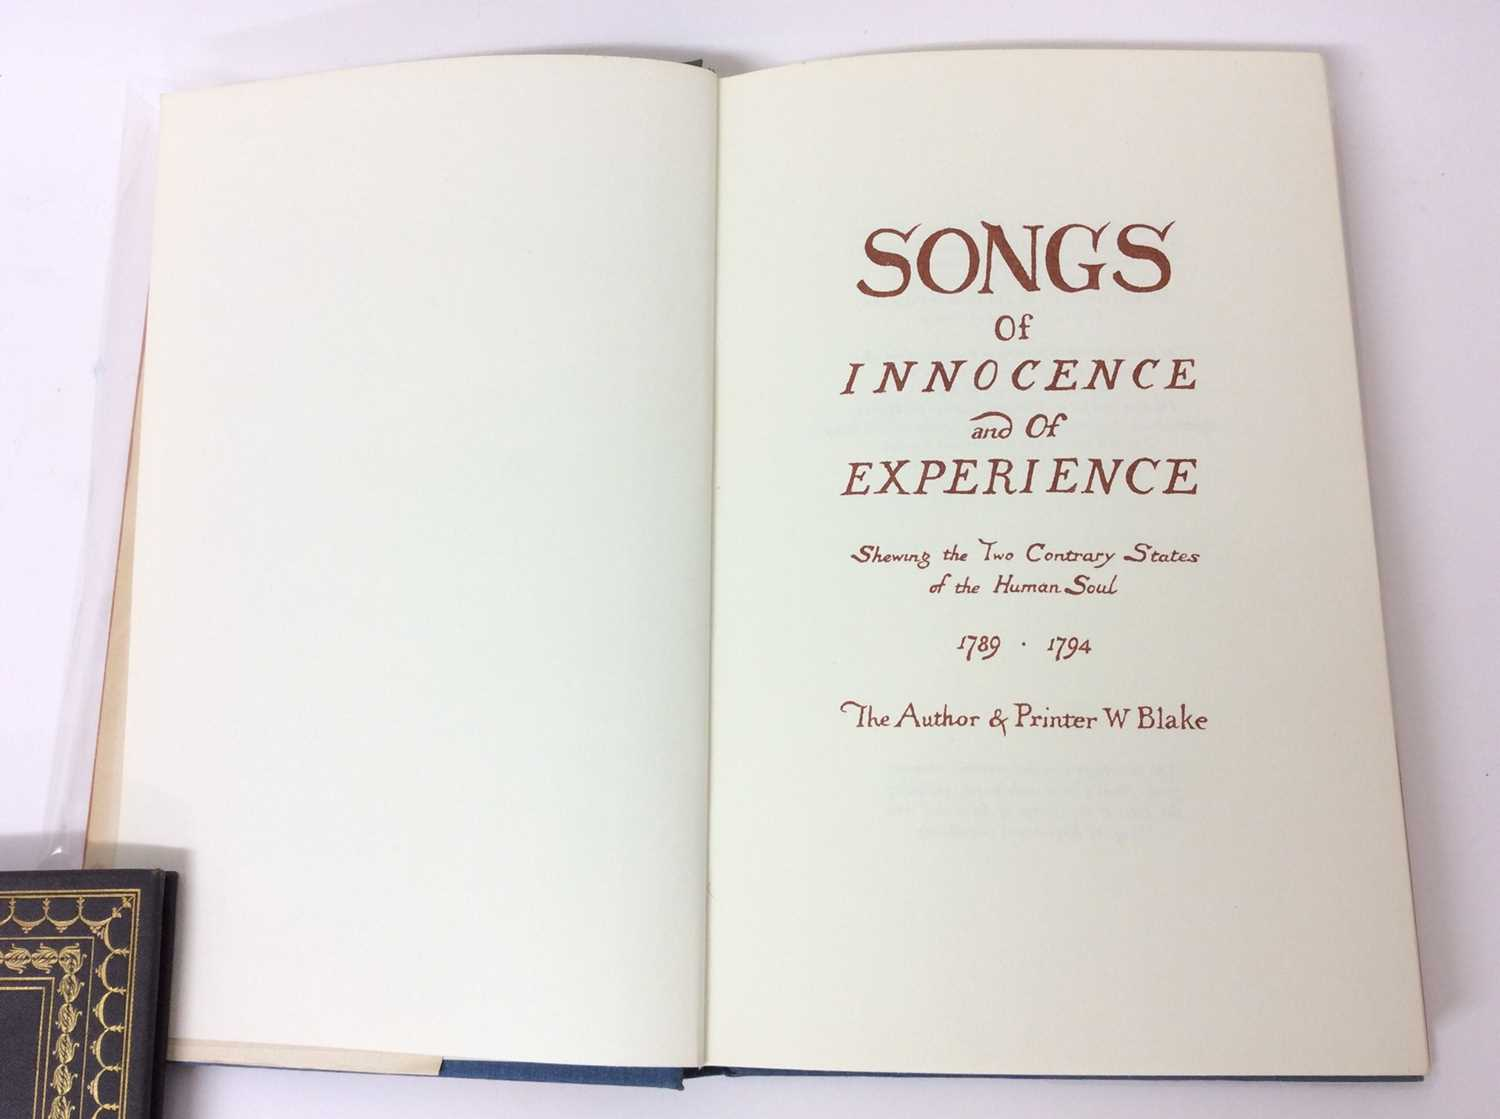 William Blake - Songs of Experience, Songs of Innocence, together with Mr Kilburn's Calicos - Image 7 of 15